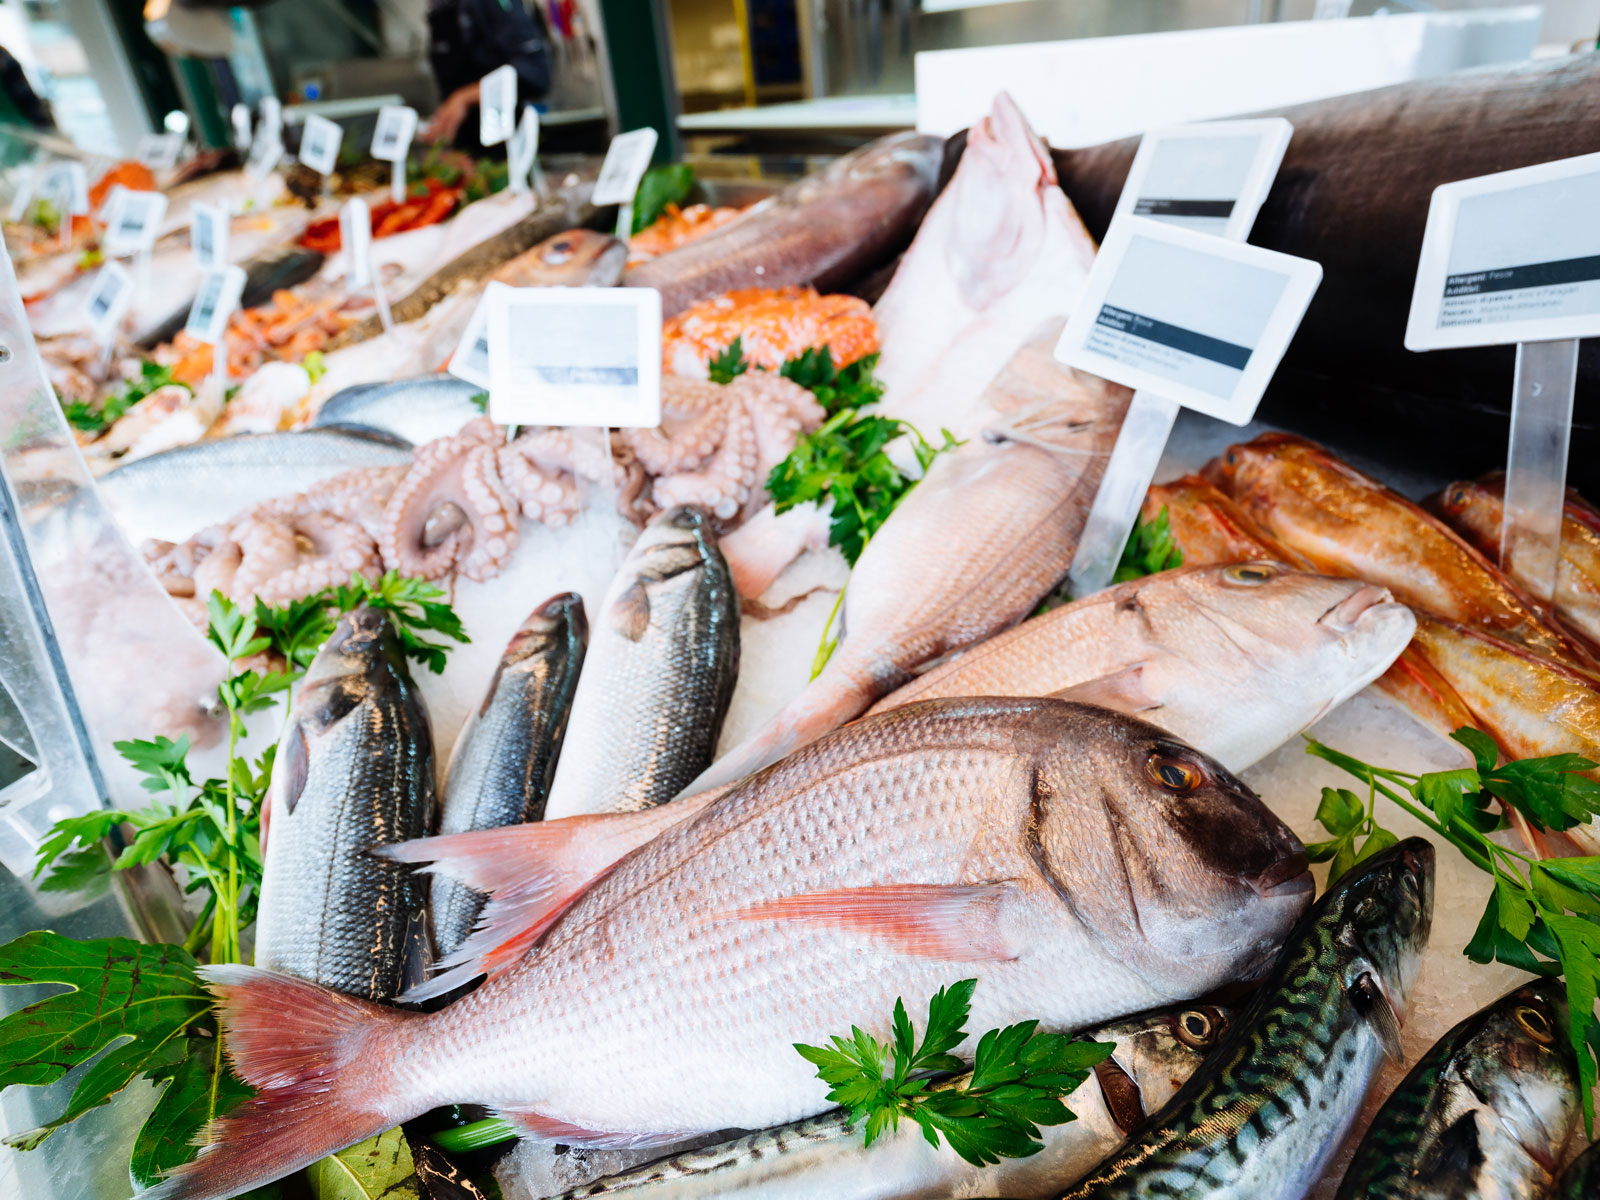 supermarket-seafood-sustainability-greenpeace-FT-BLOG0818.jpg